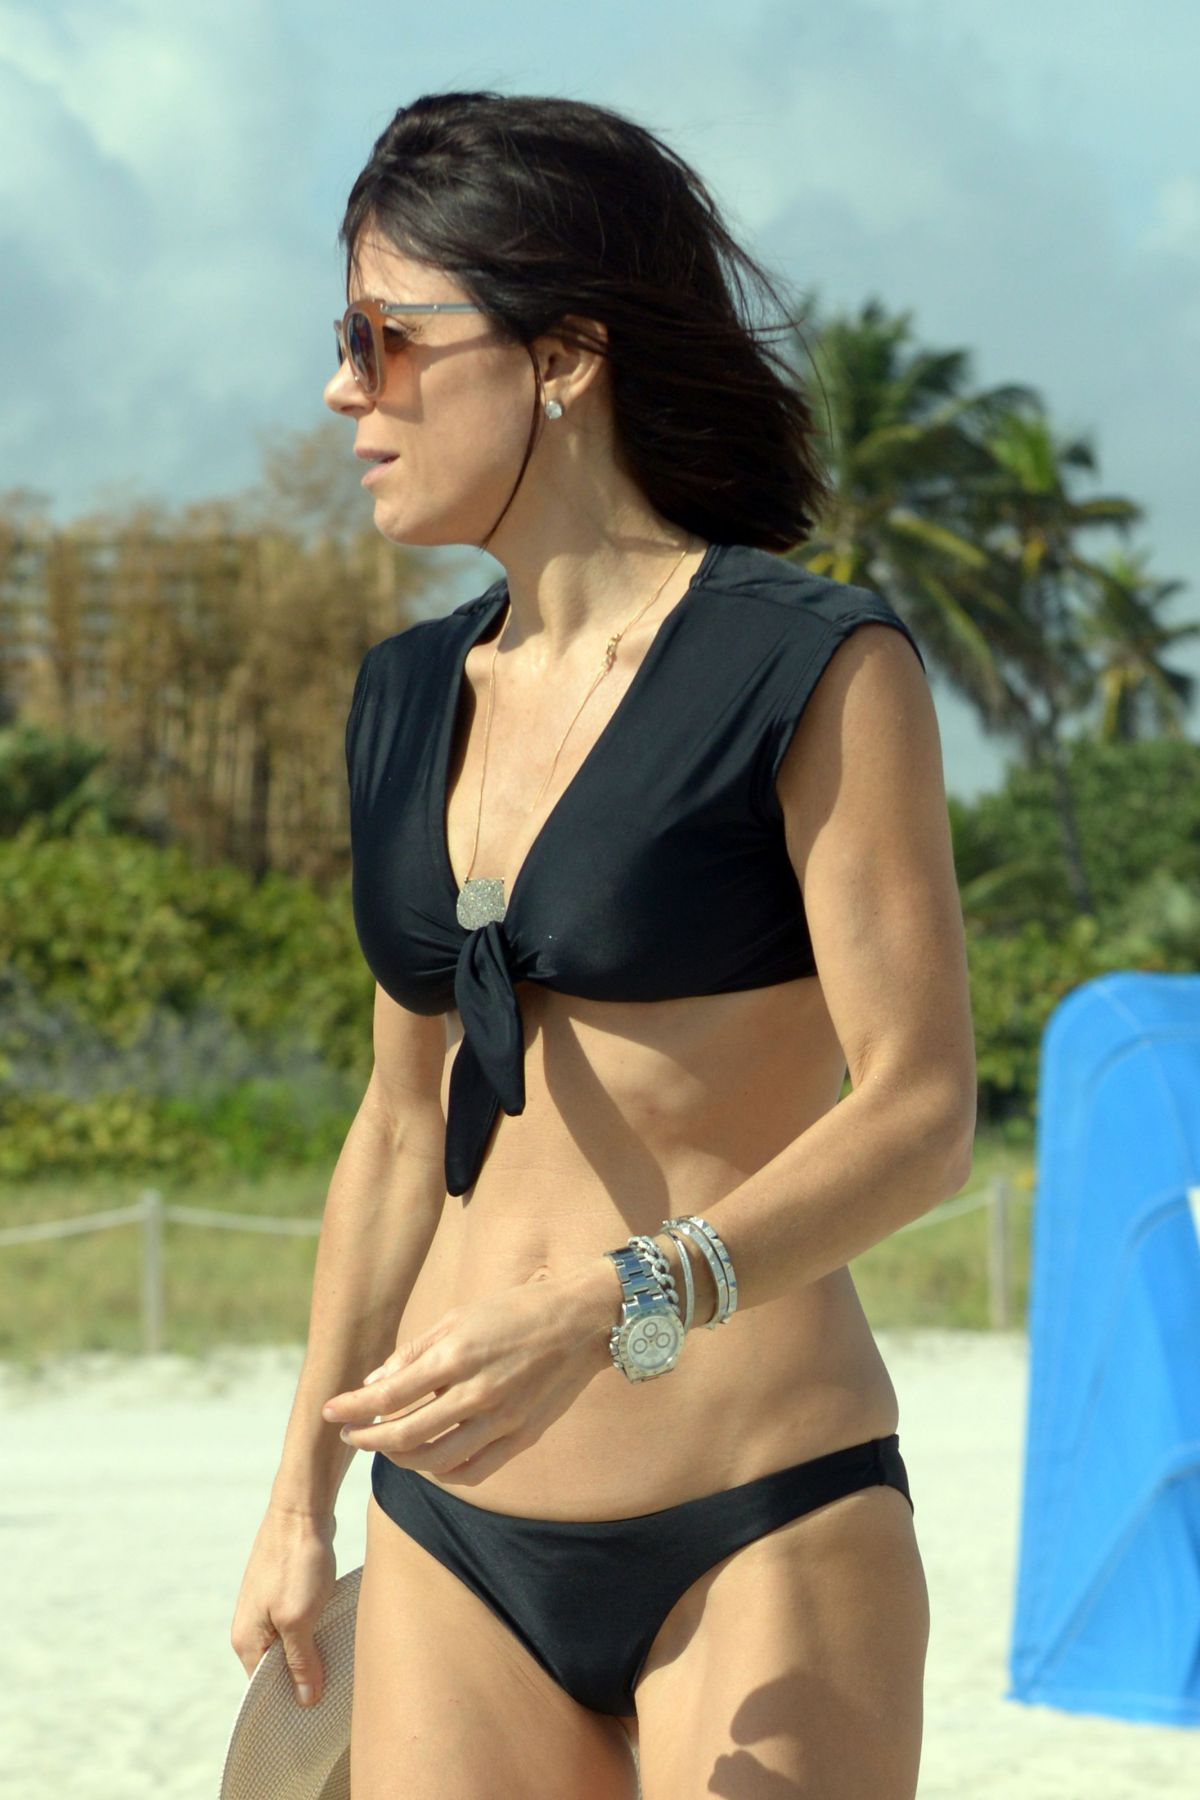 BETHENNY FRANKEL in Bikini on the Beach in Miami 12/05/2016   bethenny-frankel-in-bikini-on-the-beach-in-miami-12-05-2016_33